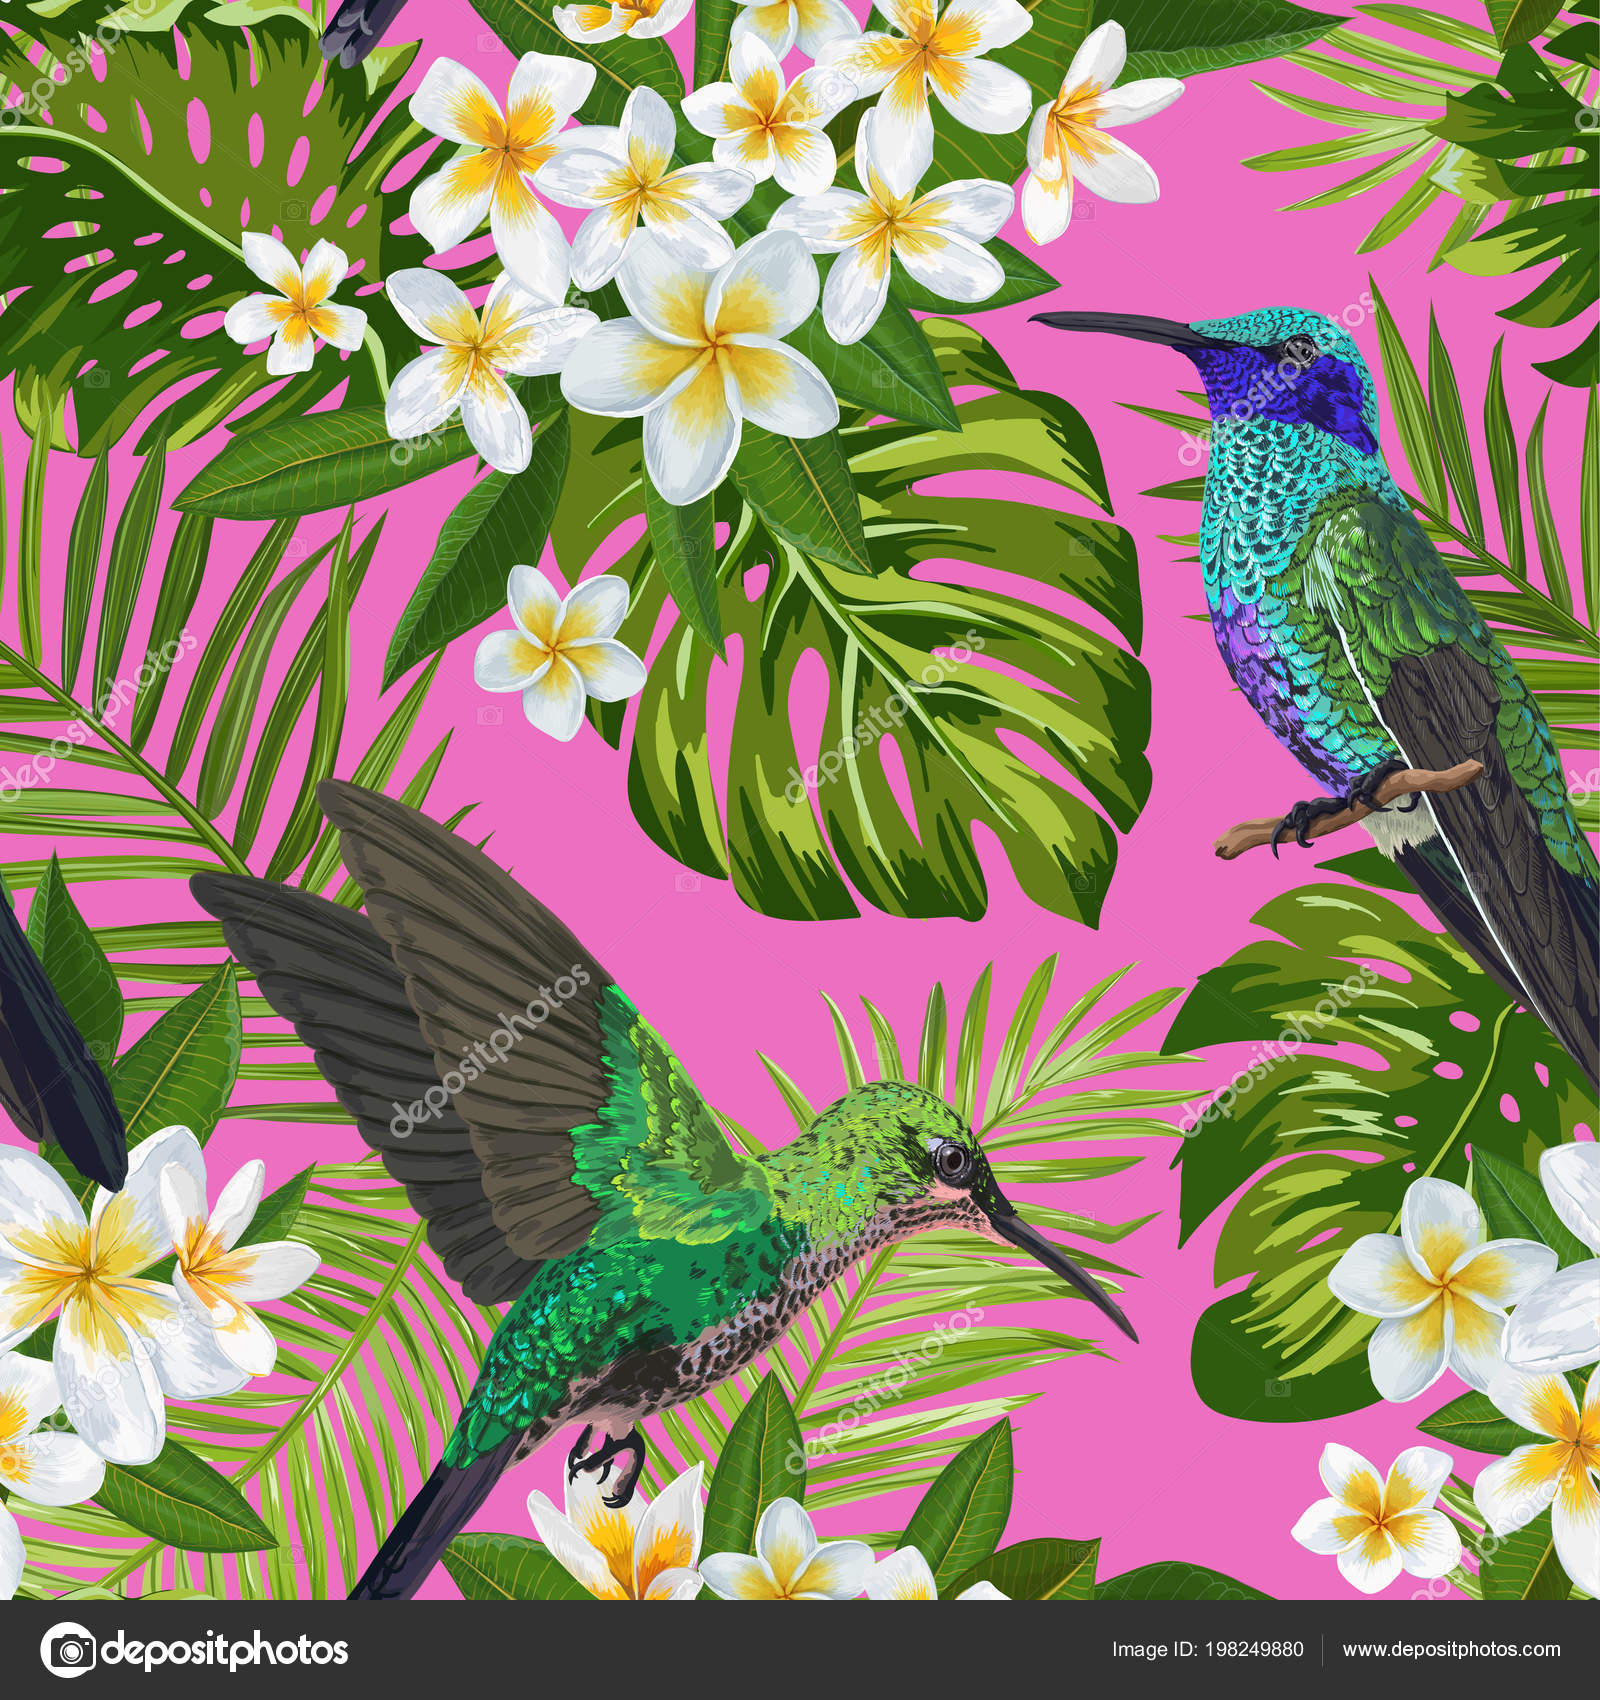 Floral Tropical Seamless Pattern With Exotic Flowers And Humming